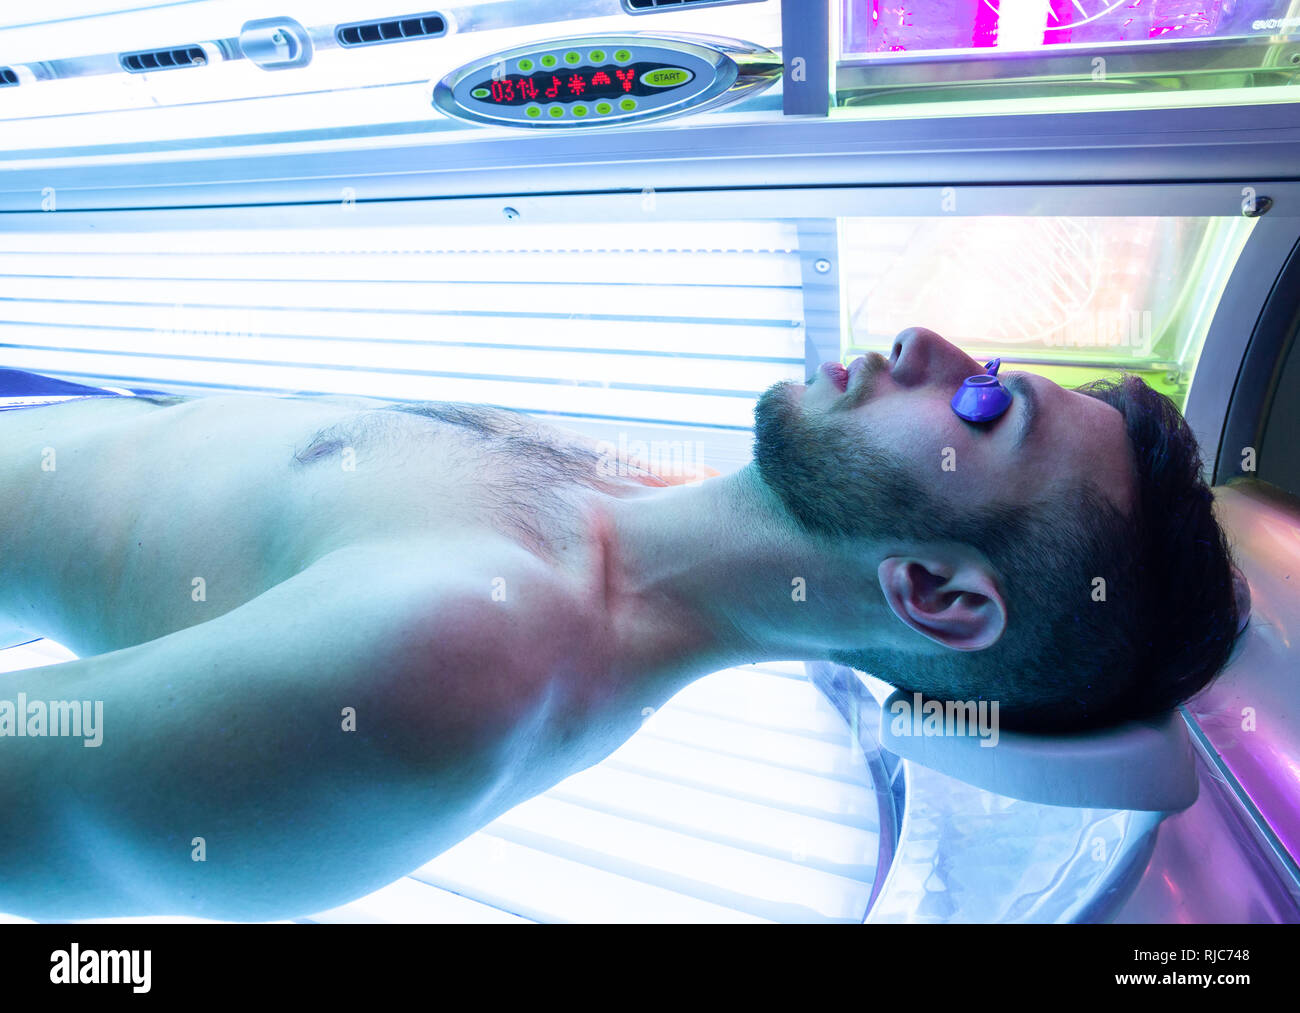 Tanning Beds Sydney Healthy Tanning Stock Photos Healthy Tanning Stock Images Alamy